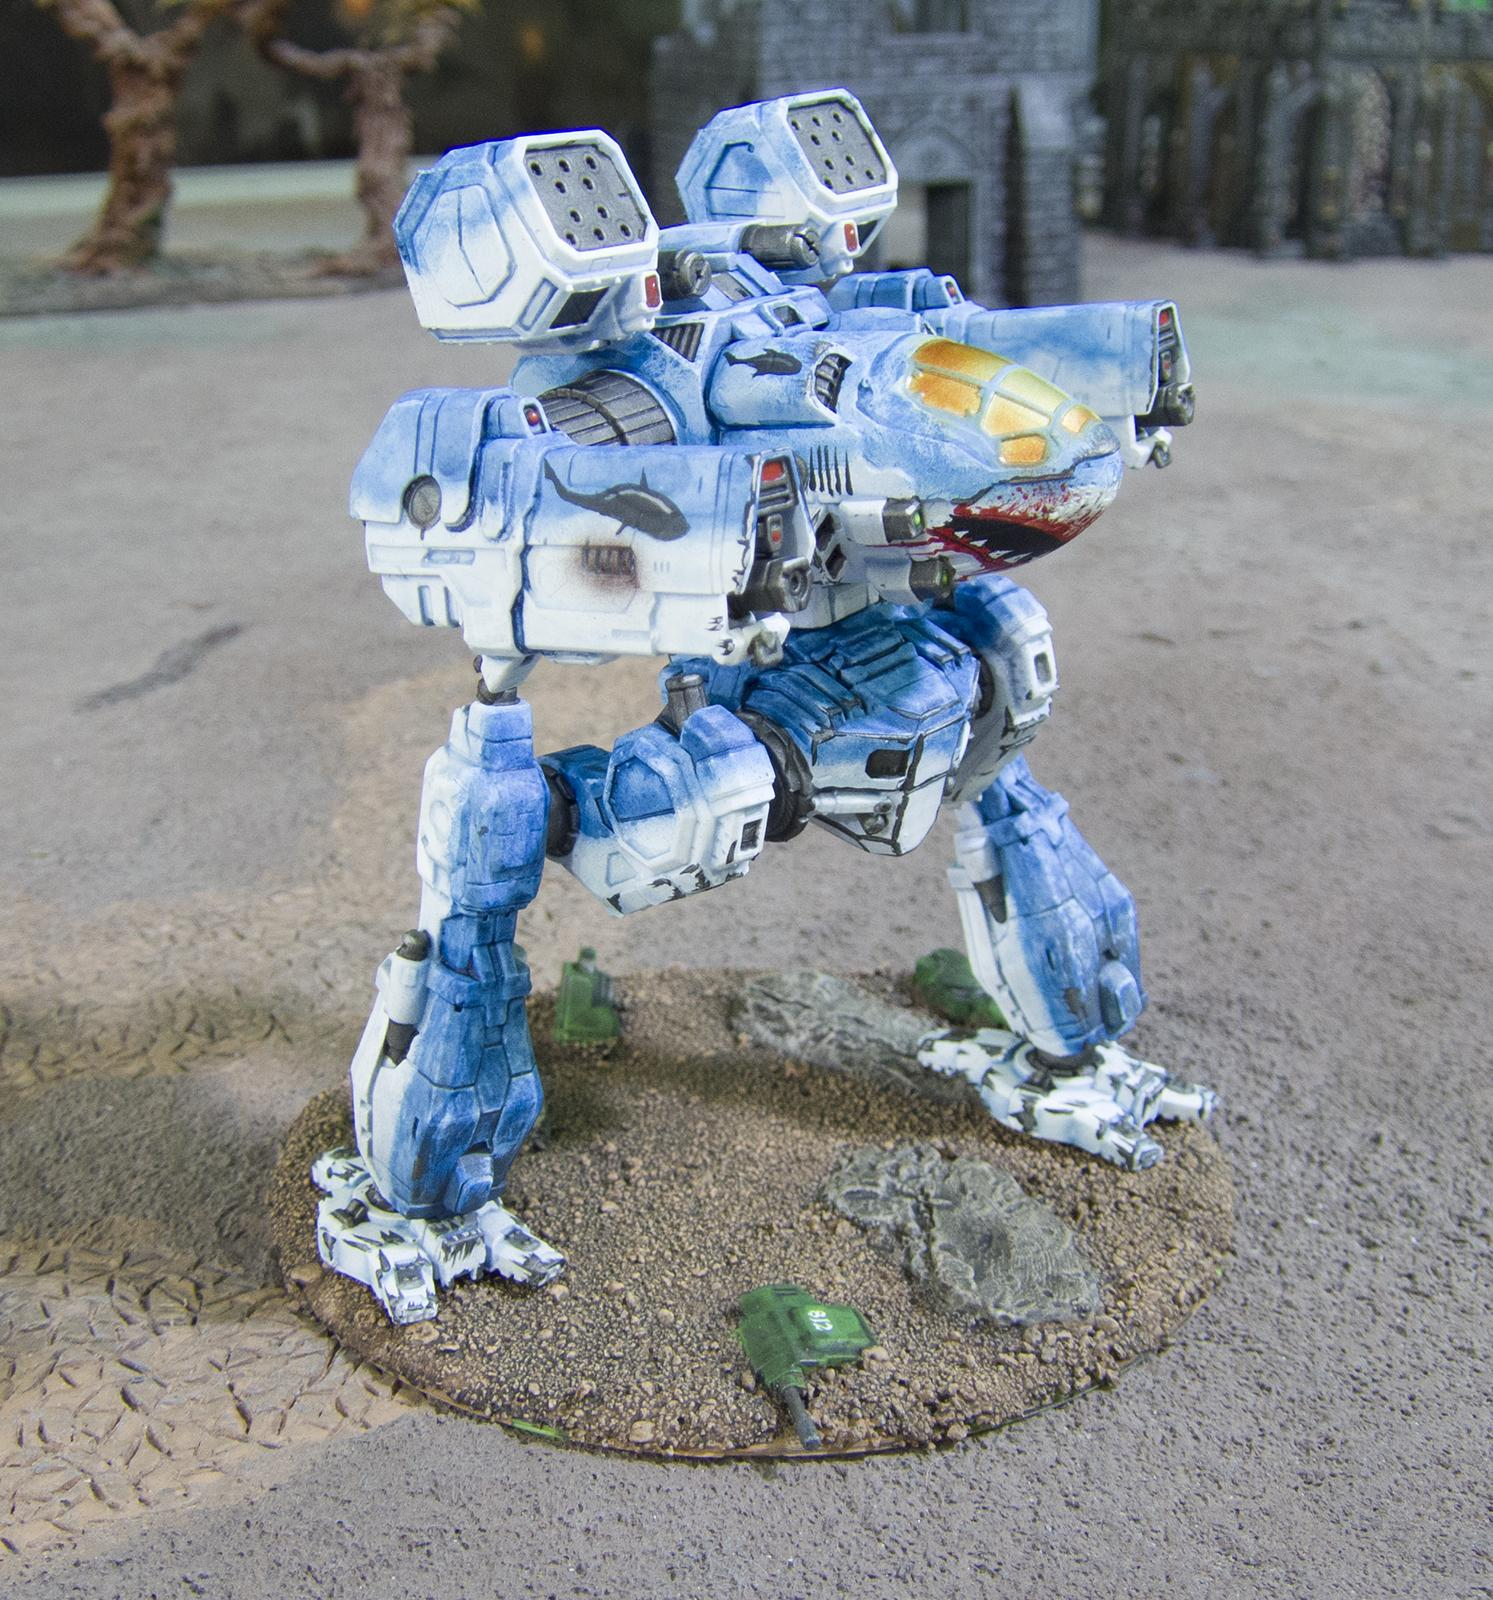 3d Printing, Anycubic Photon, Battletech, Deathstrike, Dlp, Mad Cat, Mad Cat 2, Mad Cat Mark 2, Mad Cat Mk2, Madcat, Mech, Mechwarrior, Mwo, Photon, Resin, Timber Wolf, Timberwolf